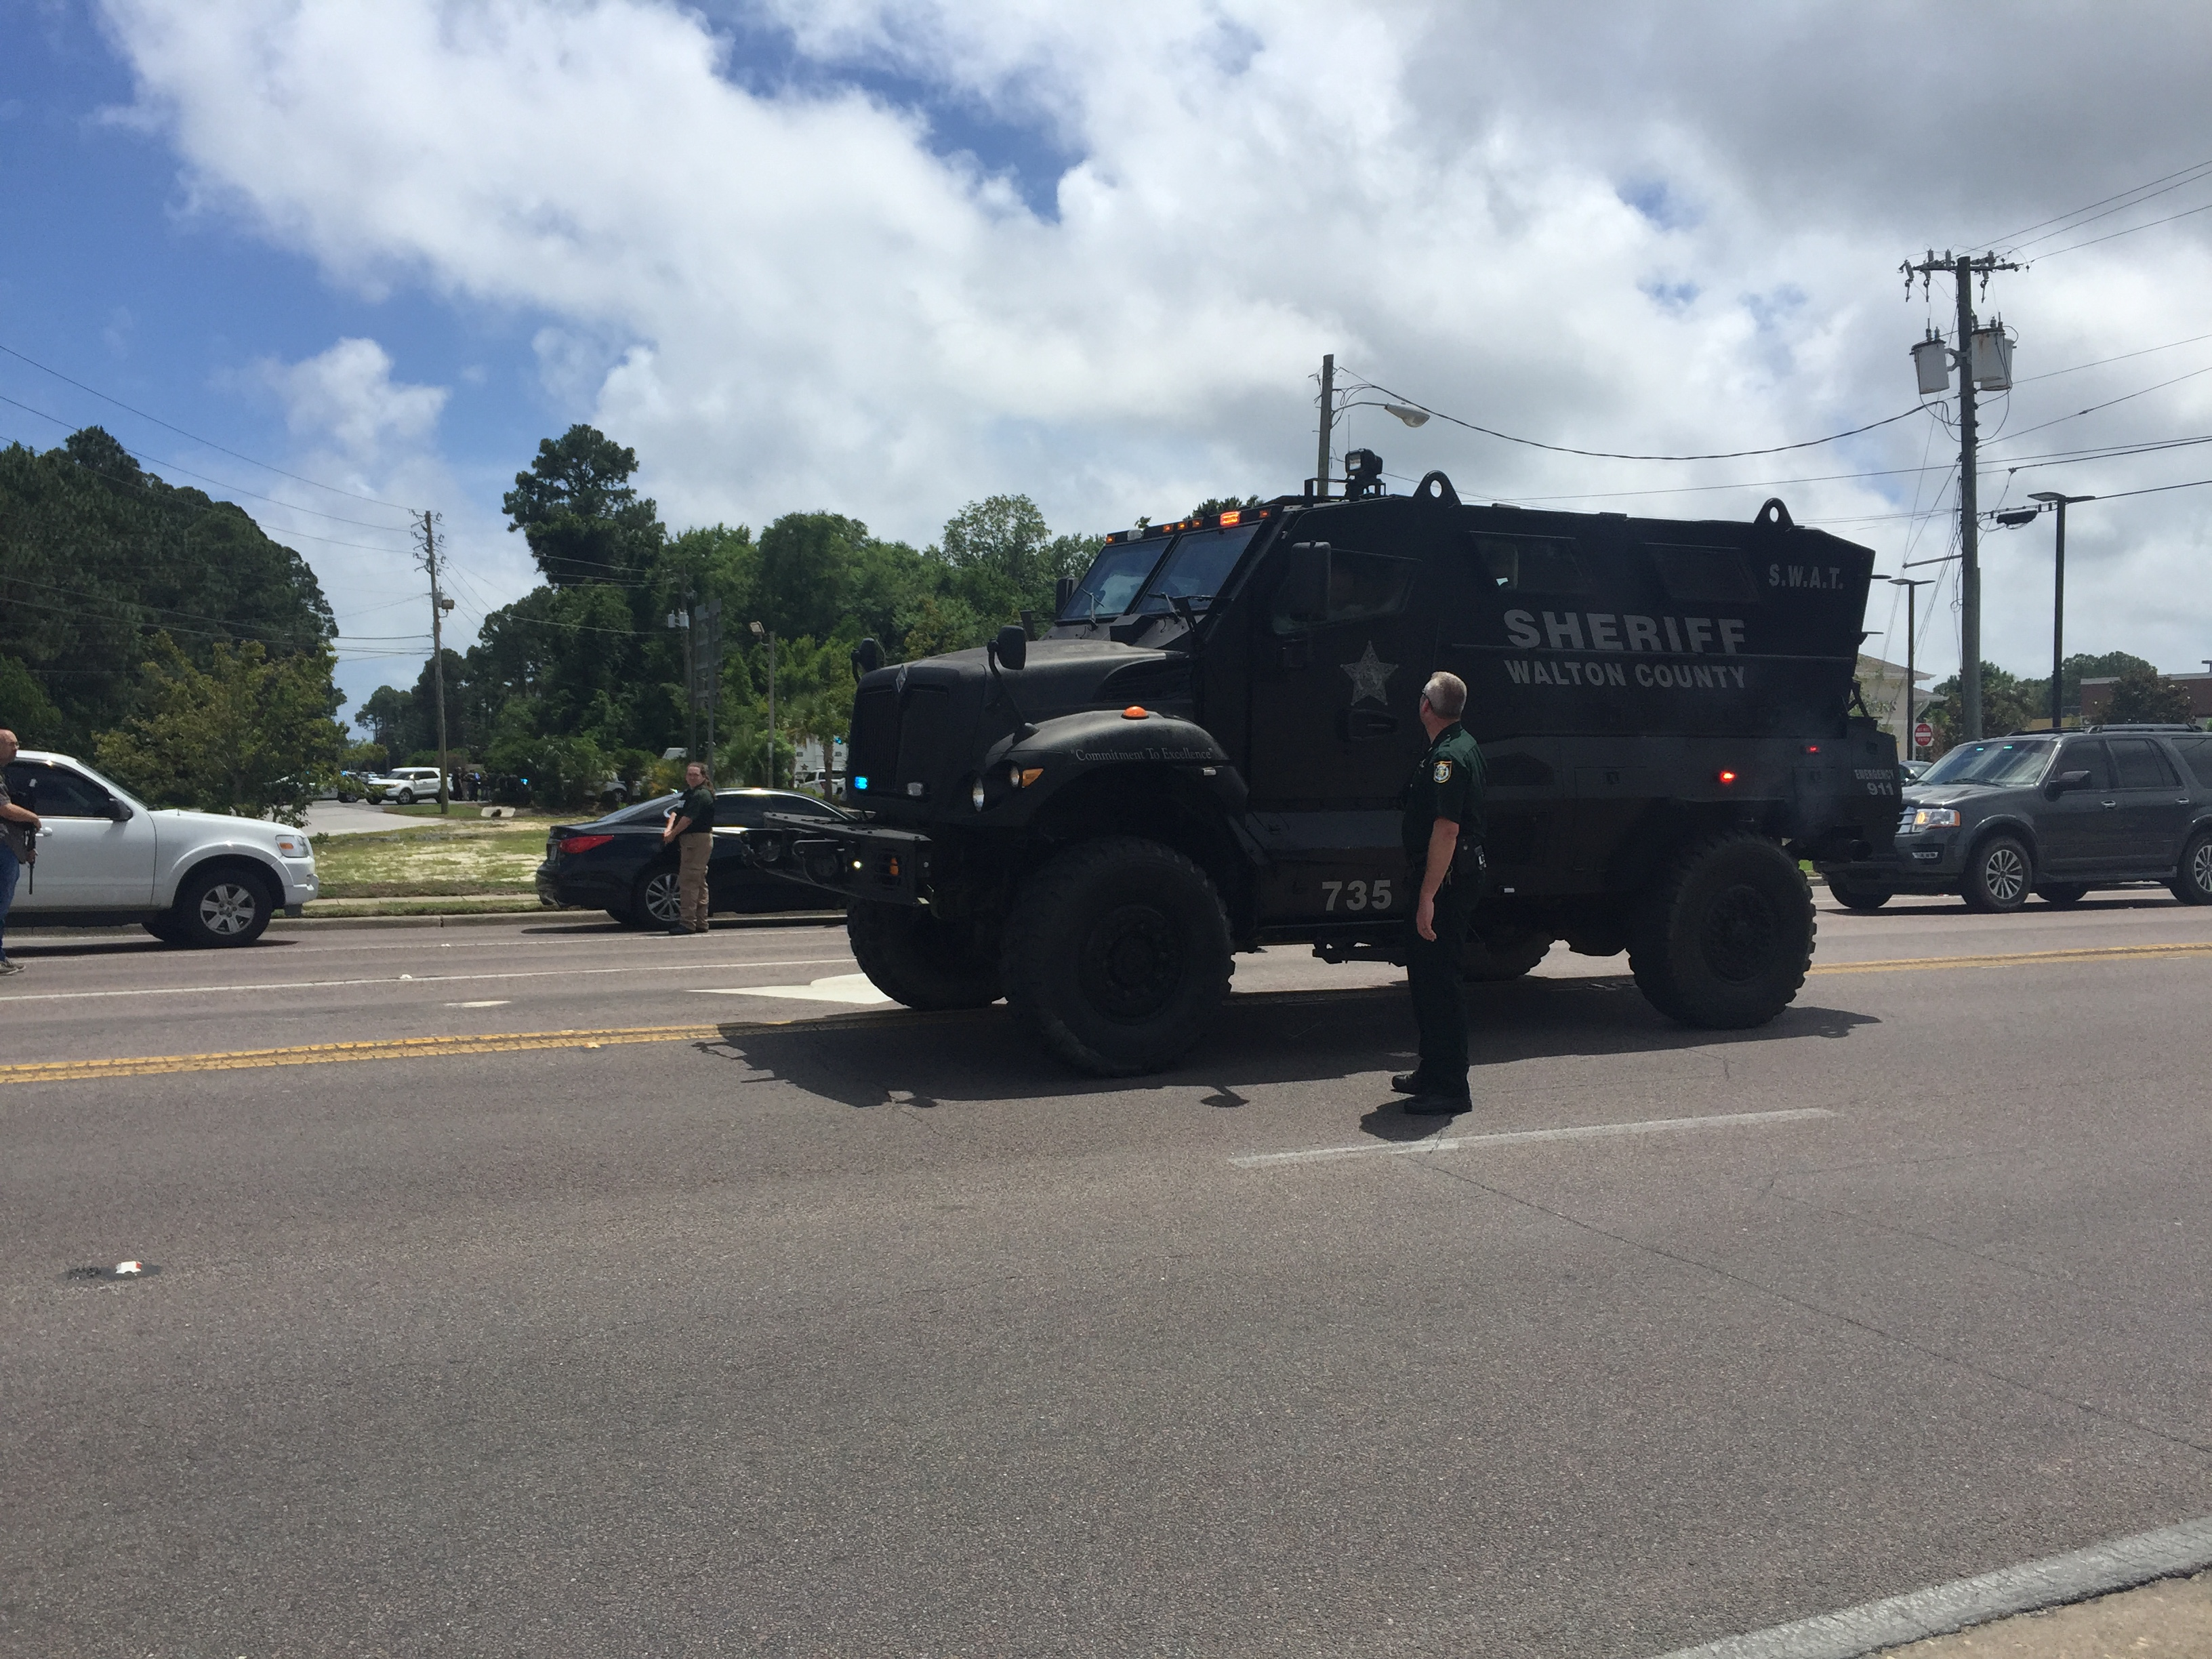 Suspected shooter dead after hours long standoff in Panama City